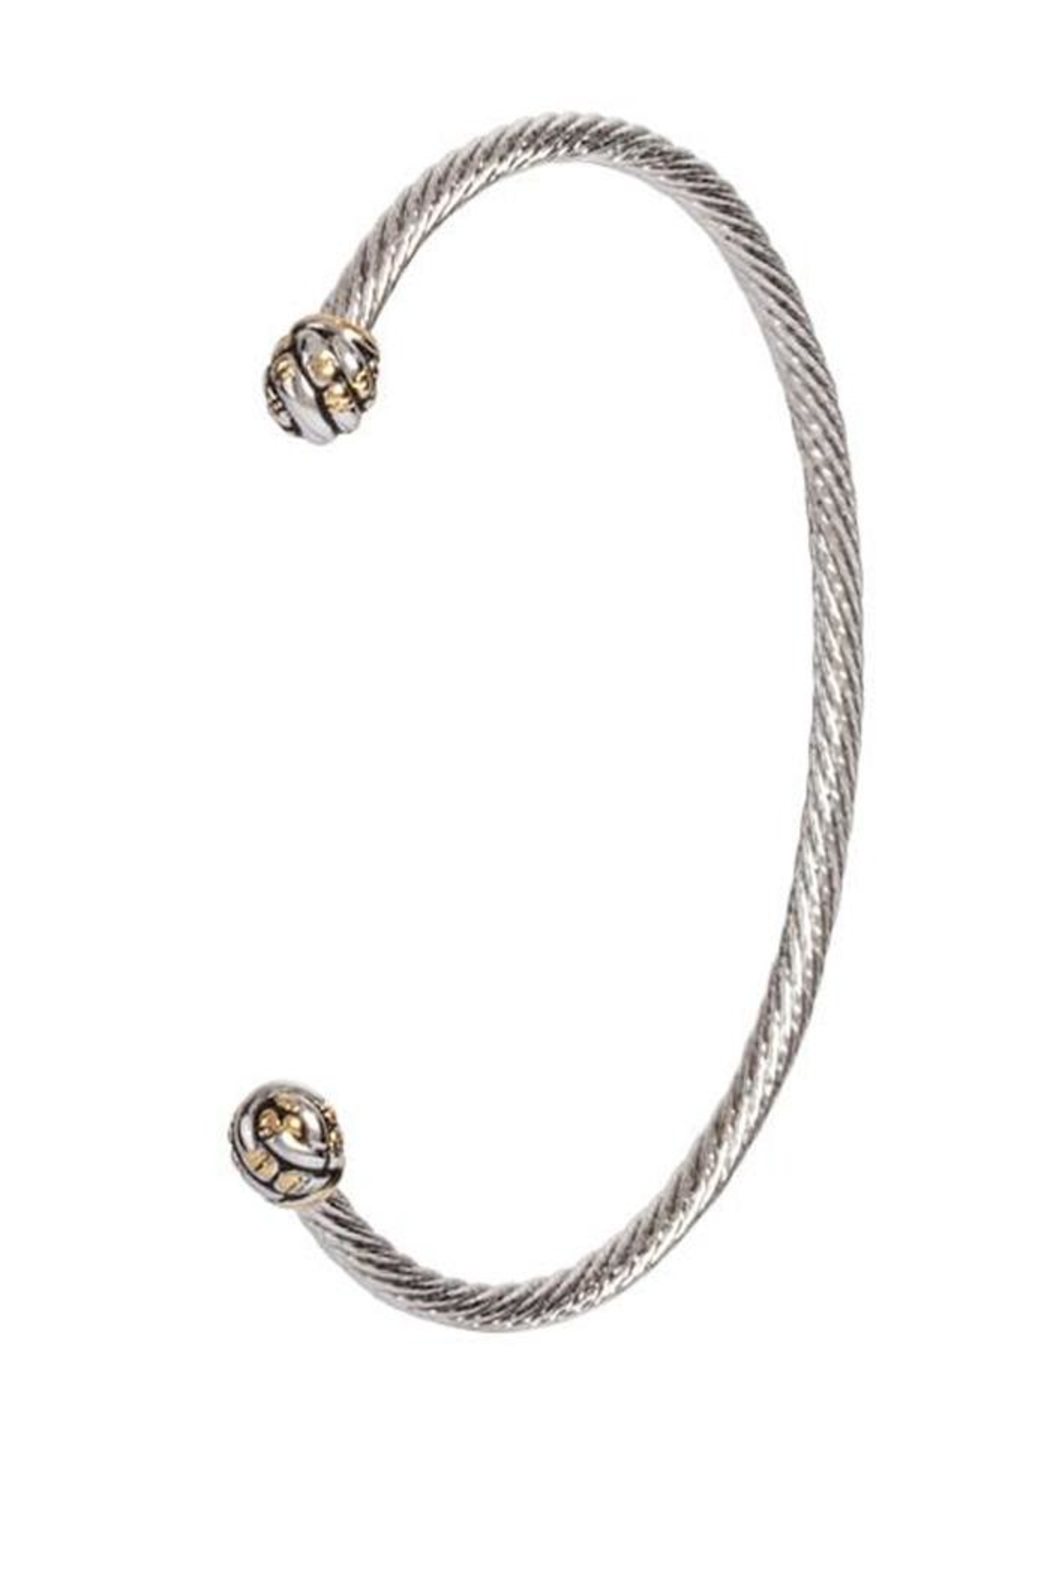 JOHN MEDEIROS Canias-Collection Thin-Wire Cuff-Bracelet - Main Image